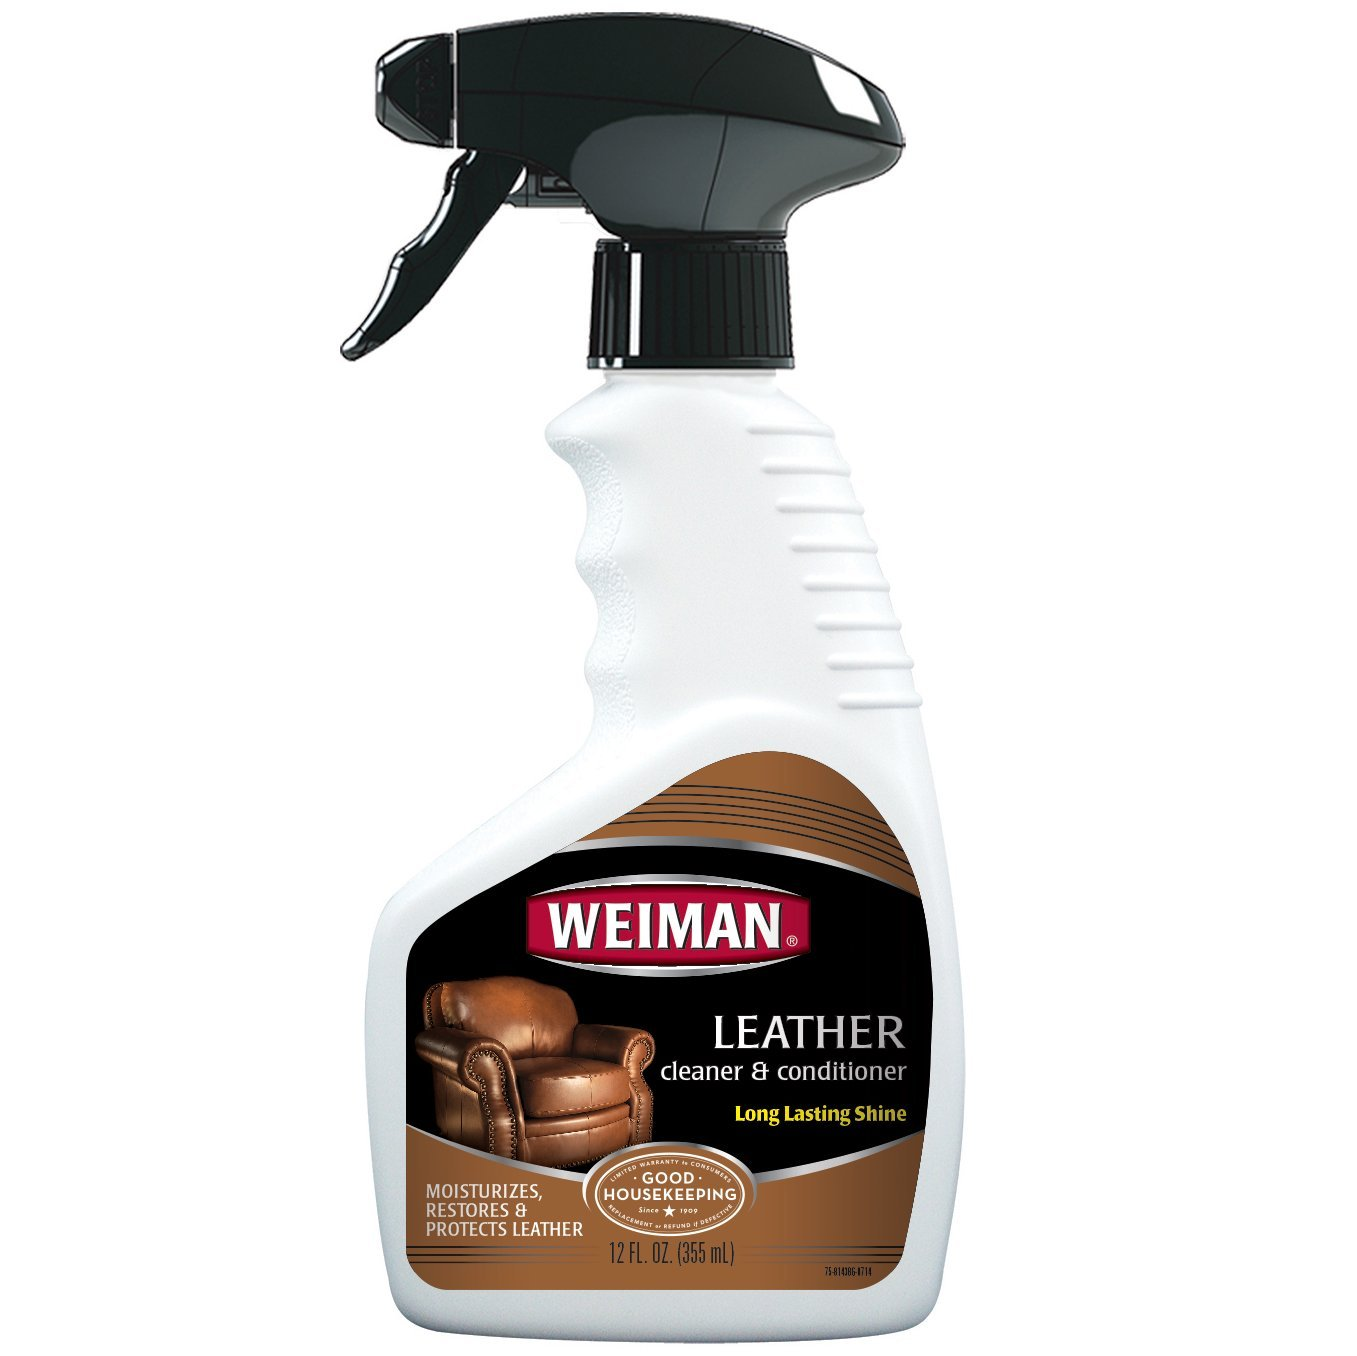 Amazon.com: Weiman Leather Cleaner & Conditioner - Gentle Formula ...